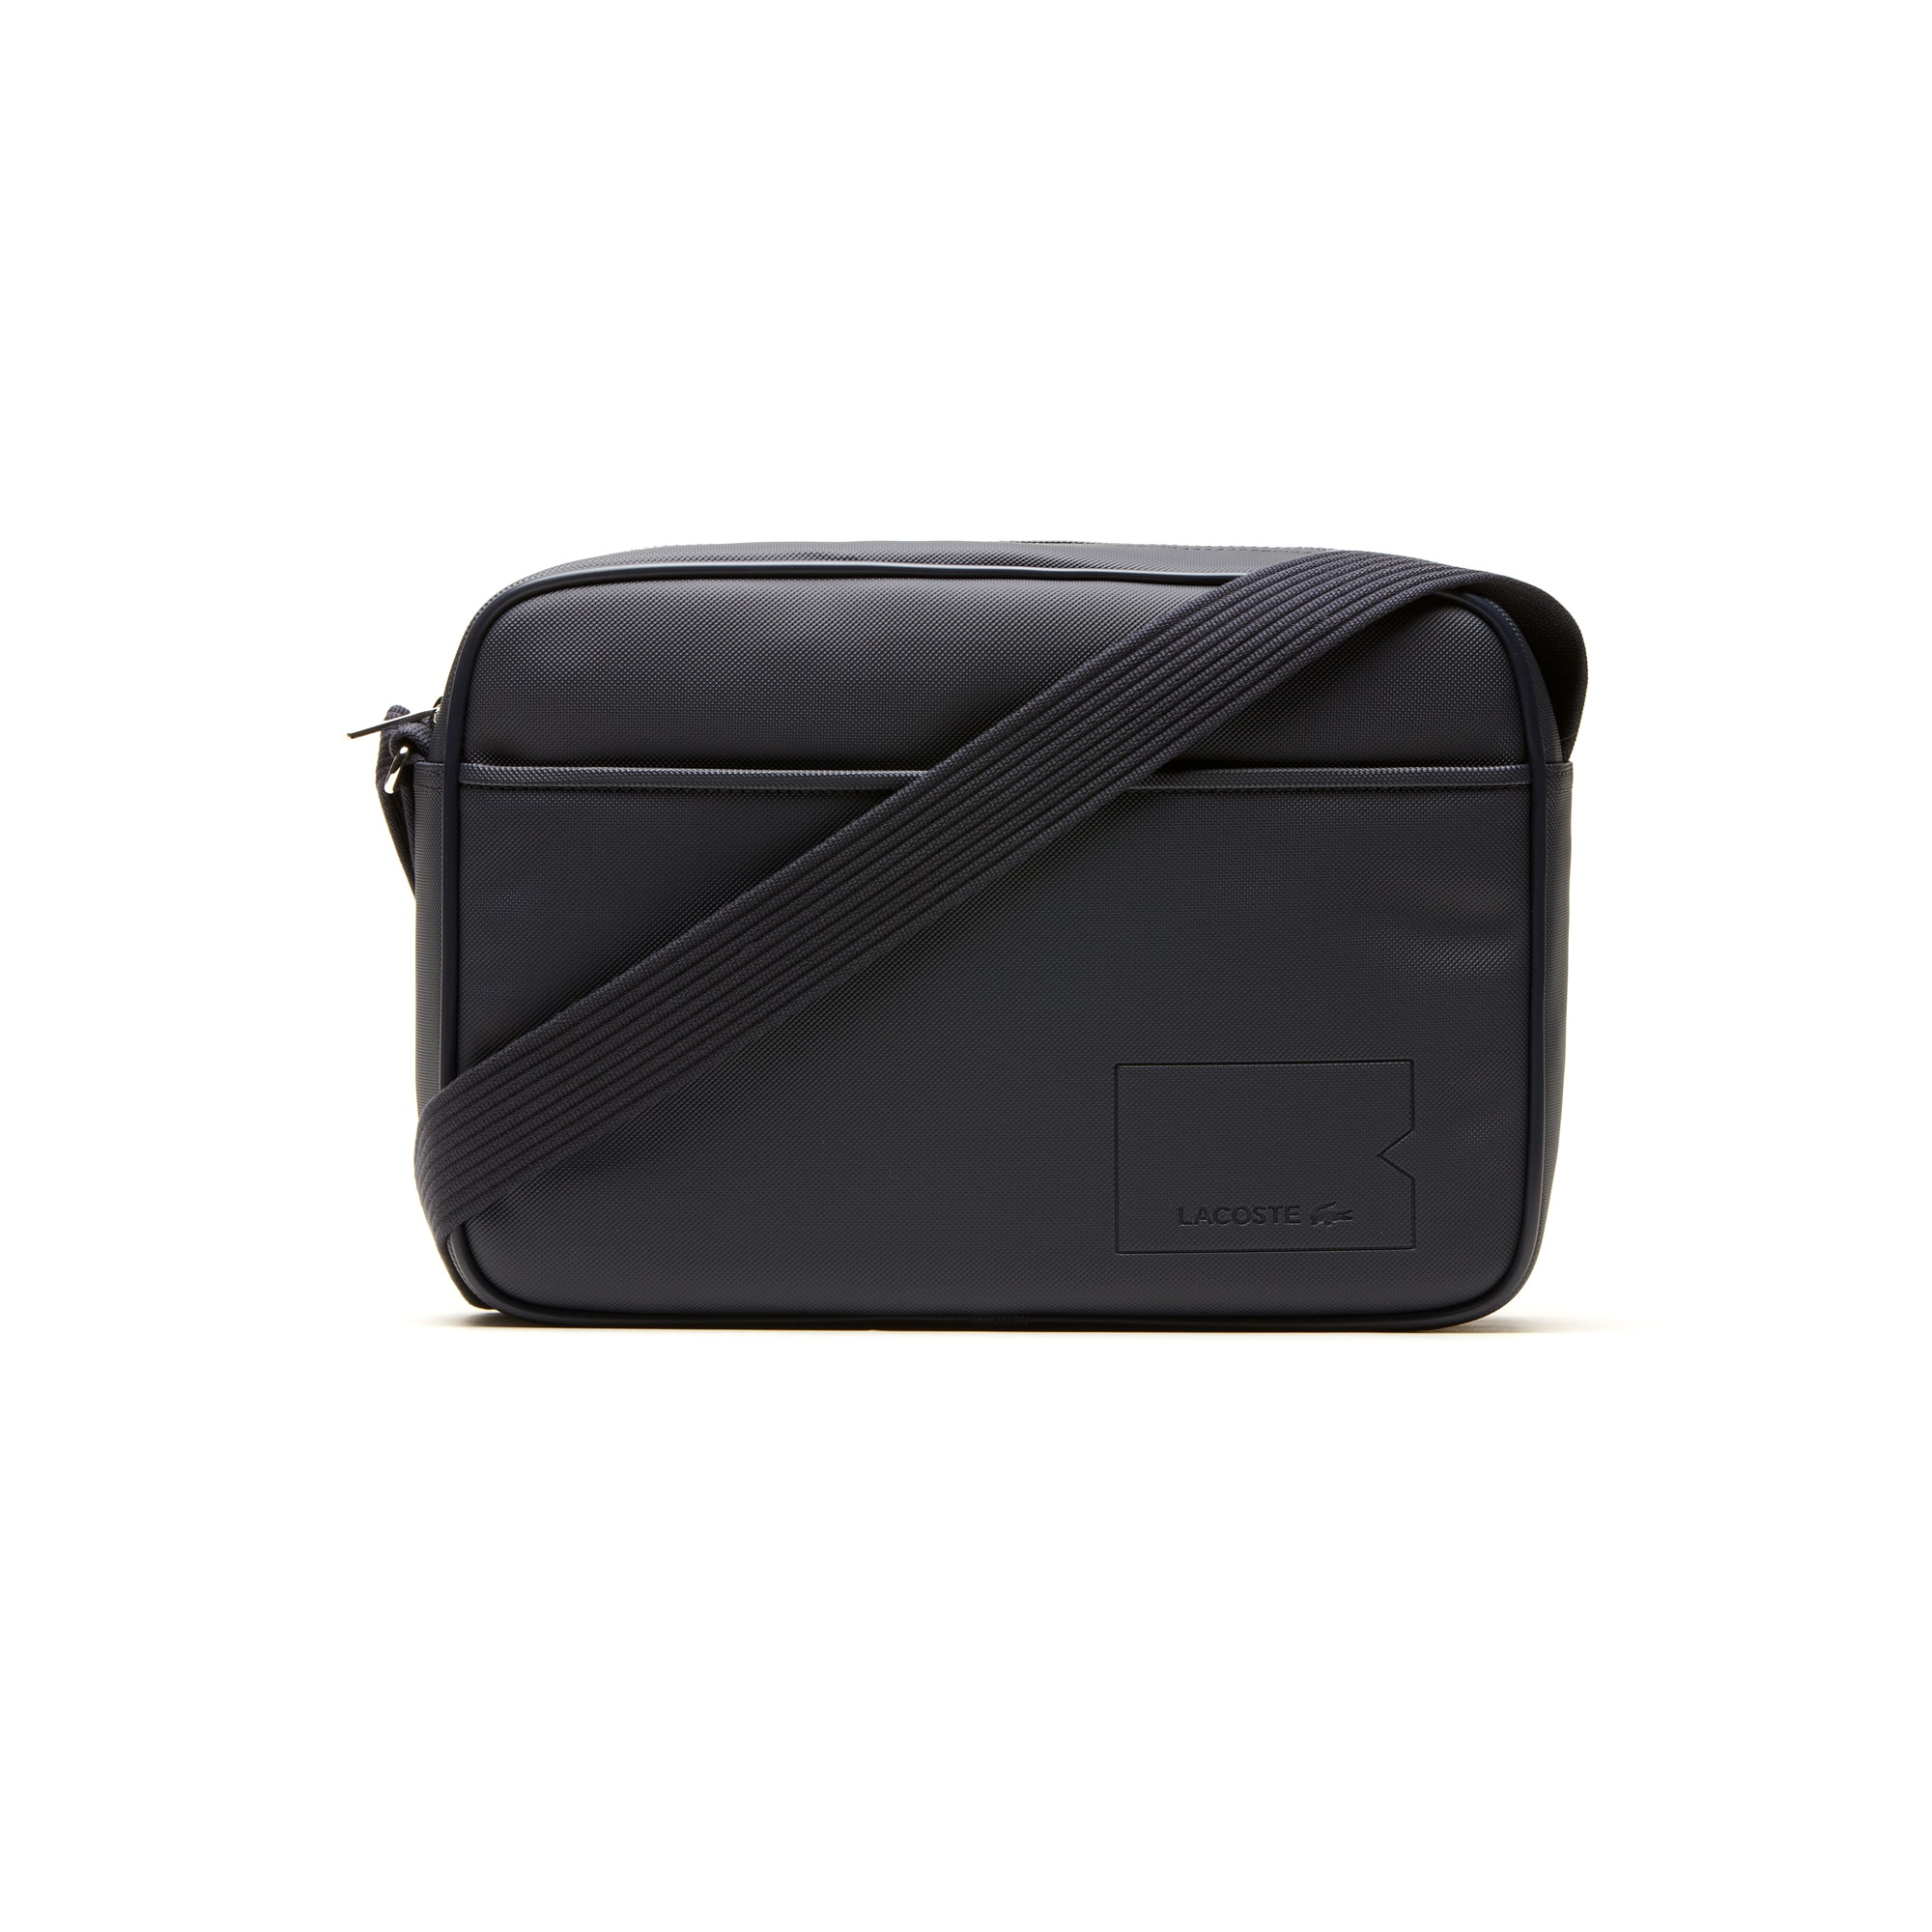 Monochrome Men's Classic-Airline-Tasche